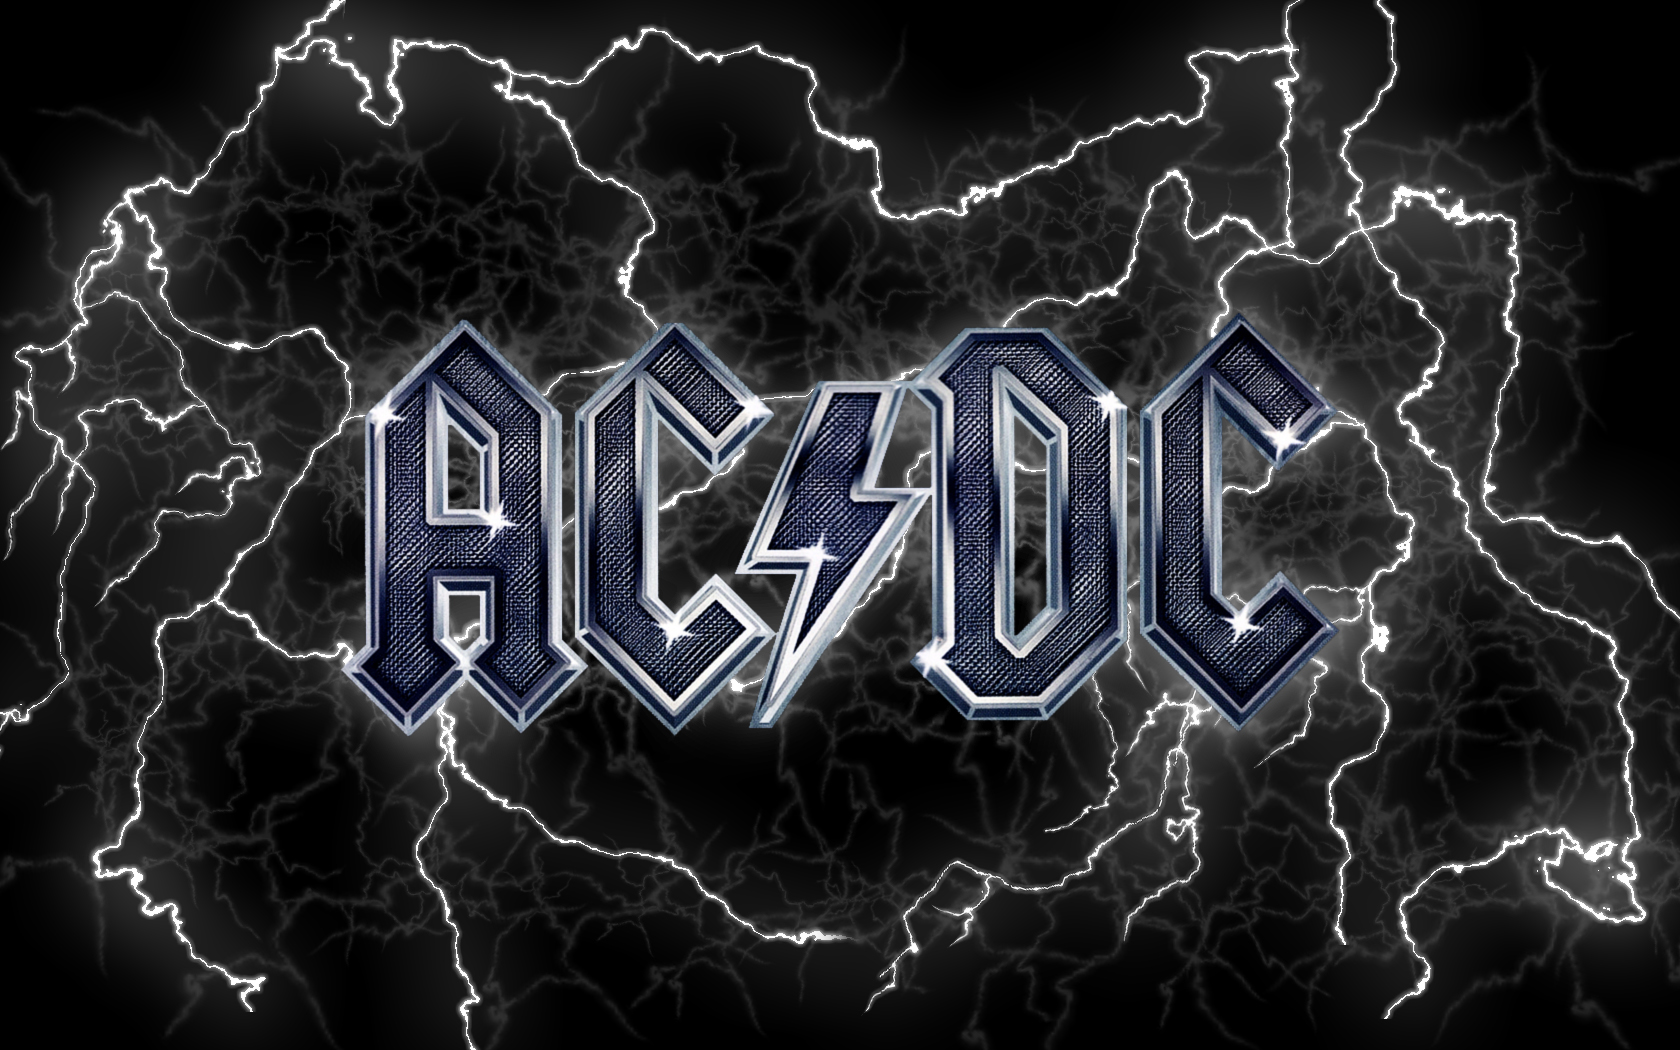 Ac dc wallpaper and background image 1680x1050 id - Ac dc wallpaper for android ...